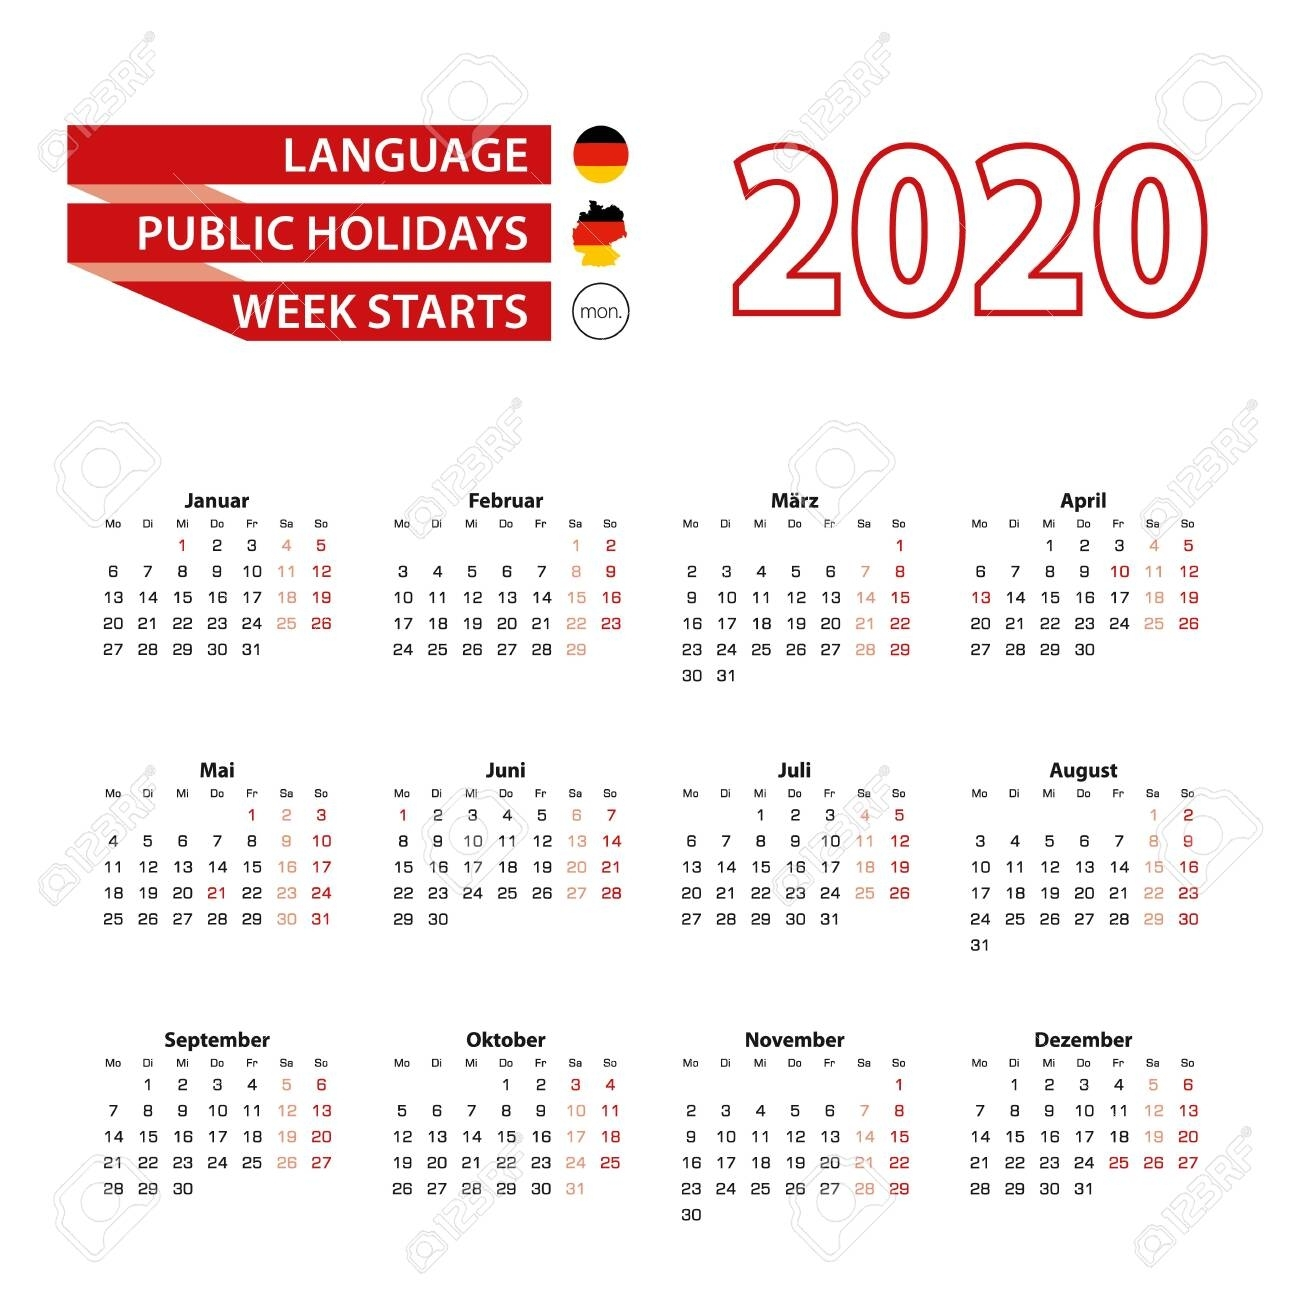 Calendar 2020 In Germany Language With Public Holidays The Country..